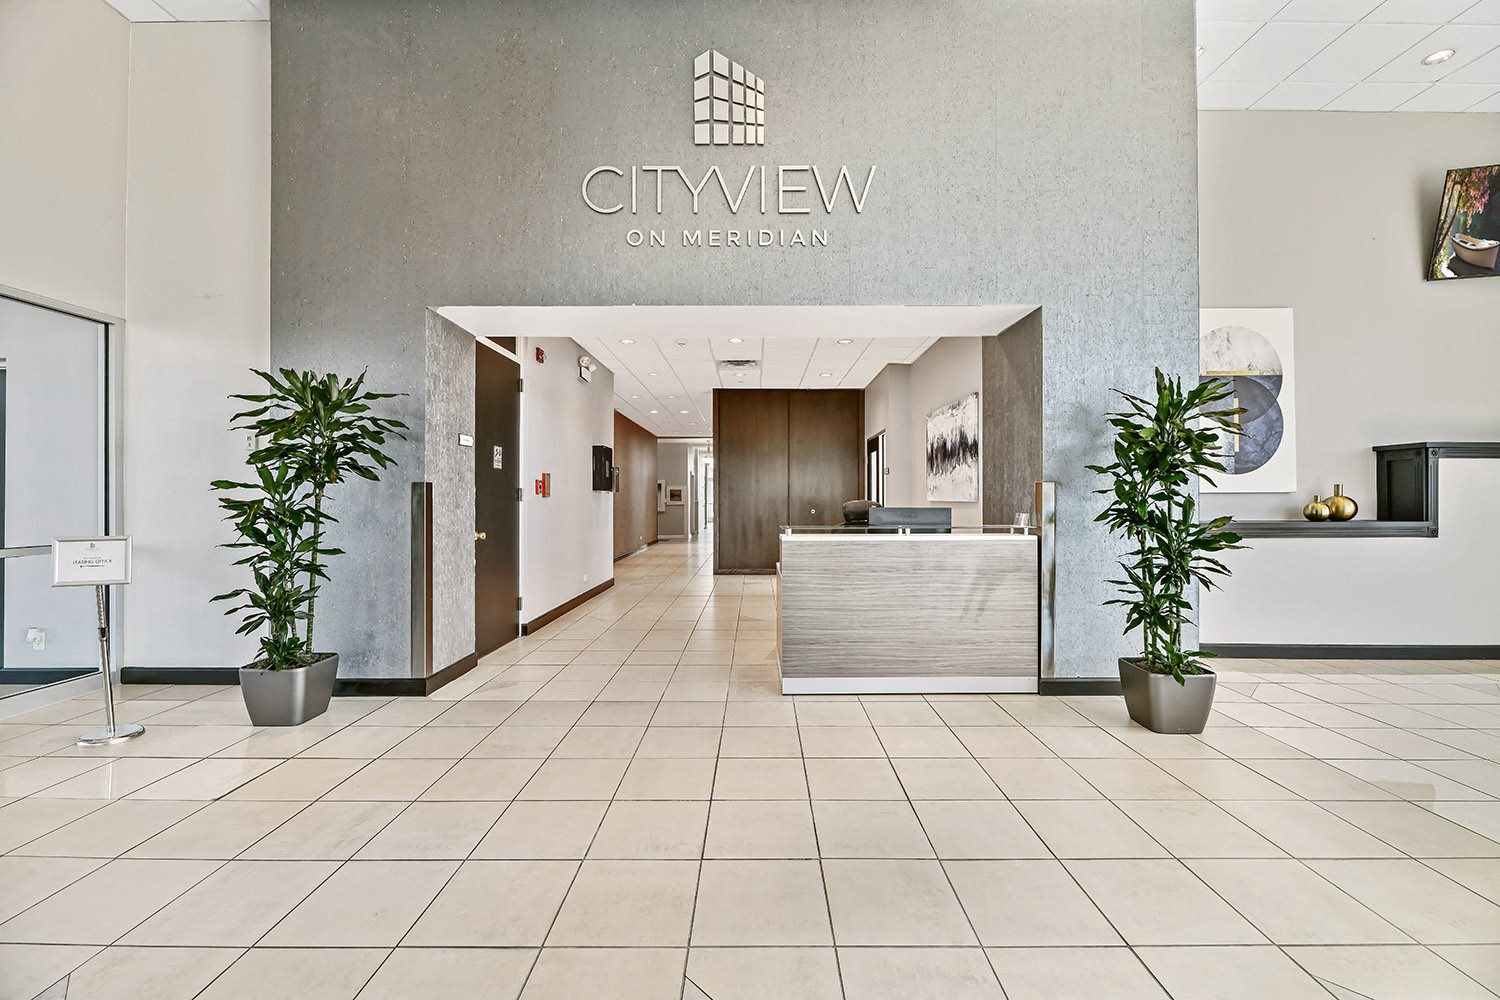 Cityview-front lobby